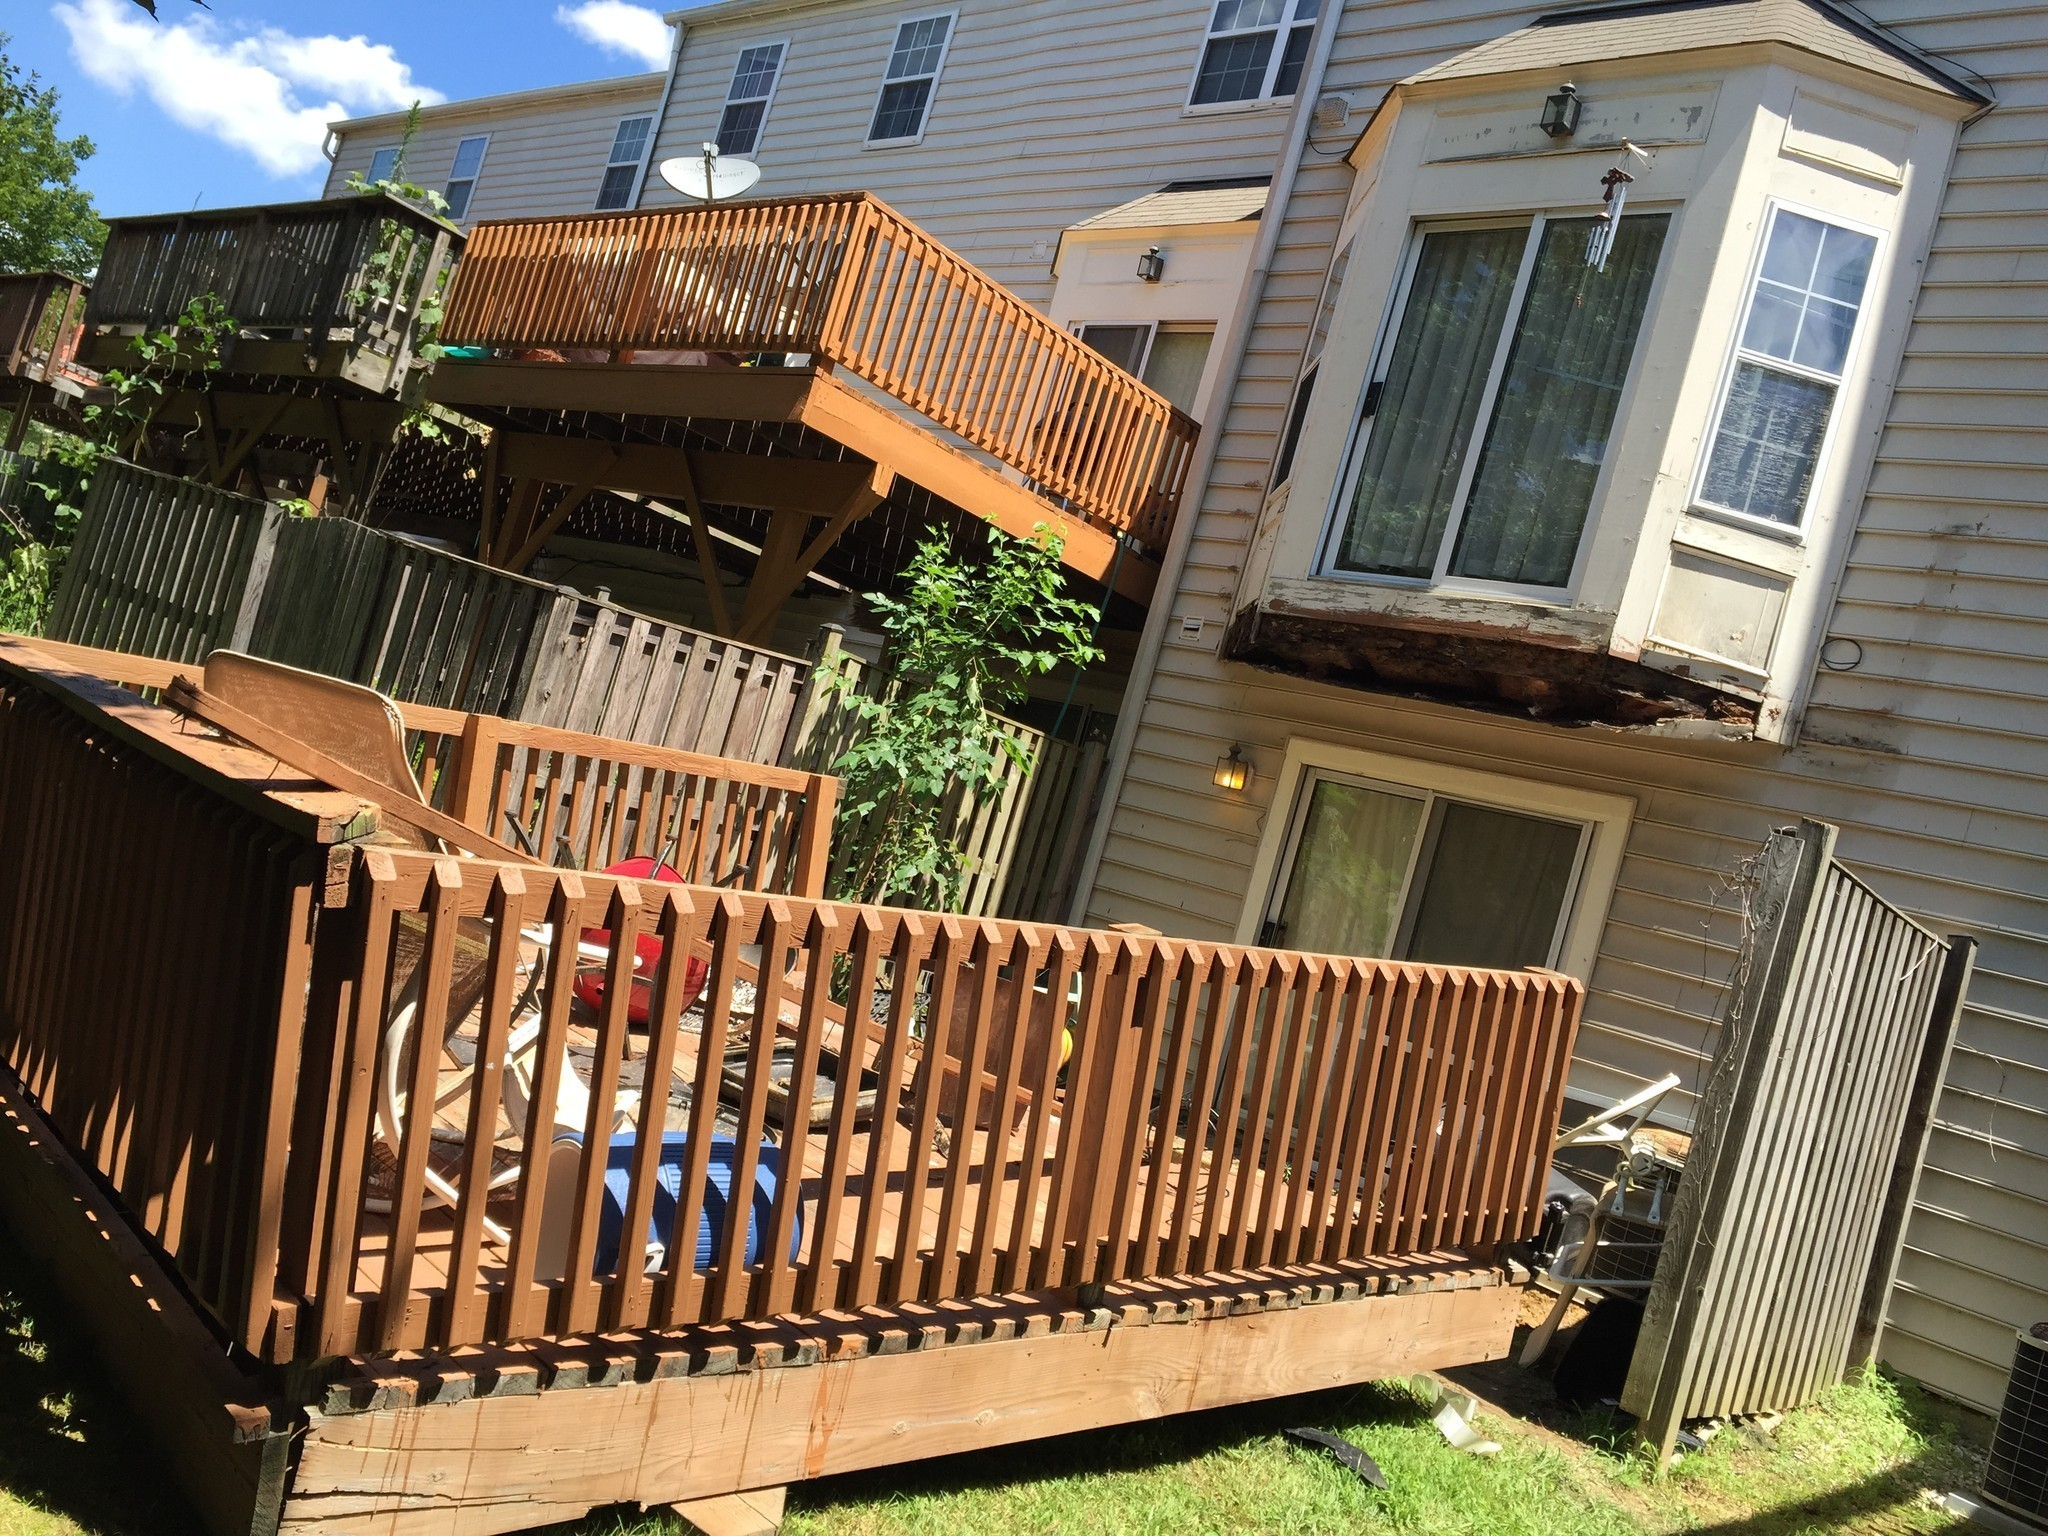 Hcdfrs Investigate Columbia Deck Collapse Howard County